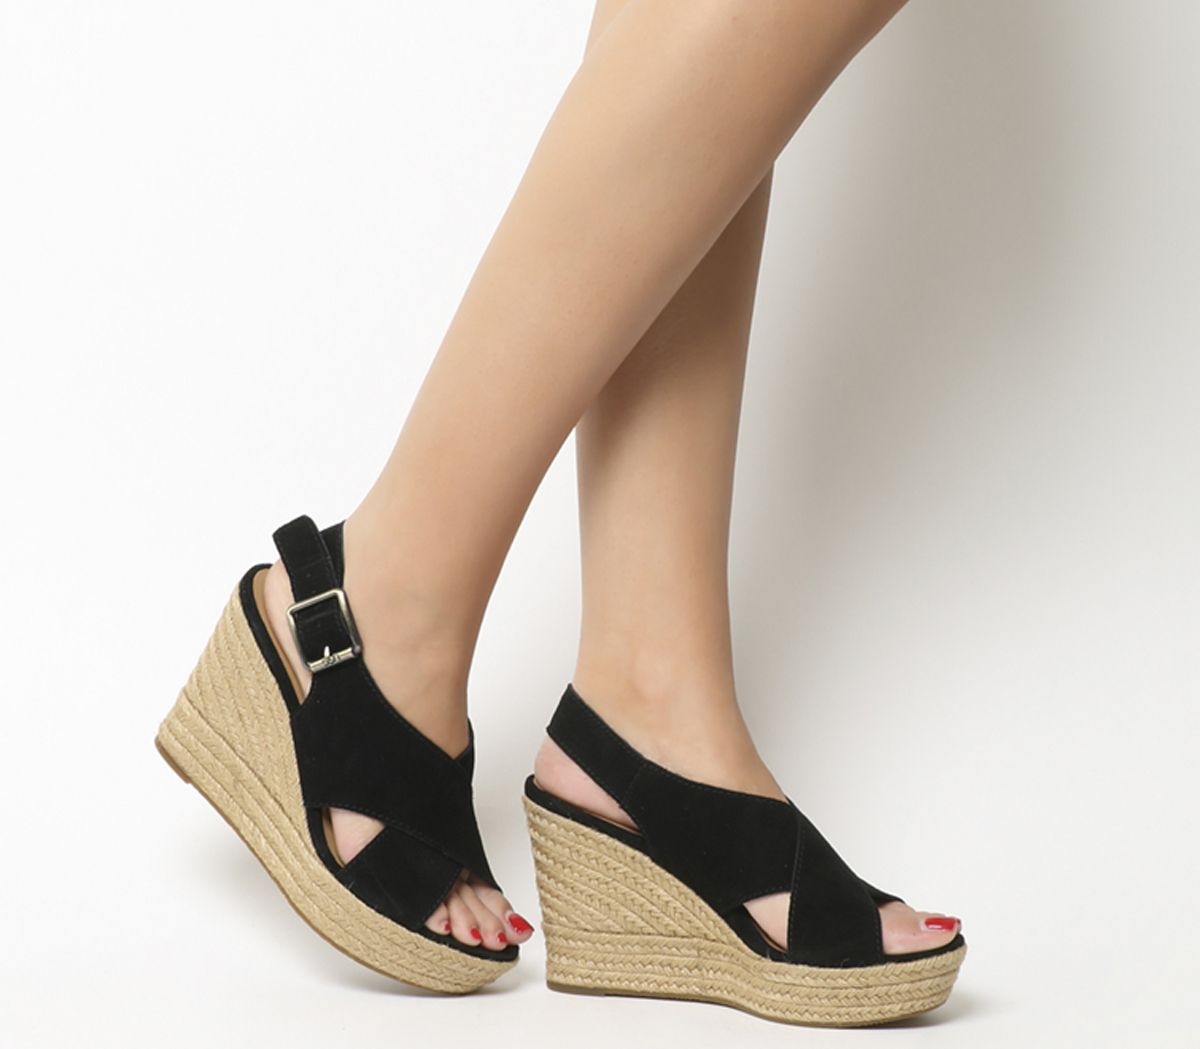 fe5987c89f UGG Harlow Wedges Black - Sandals